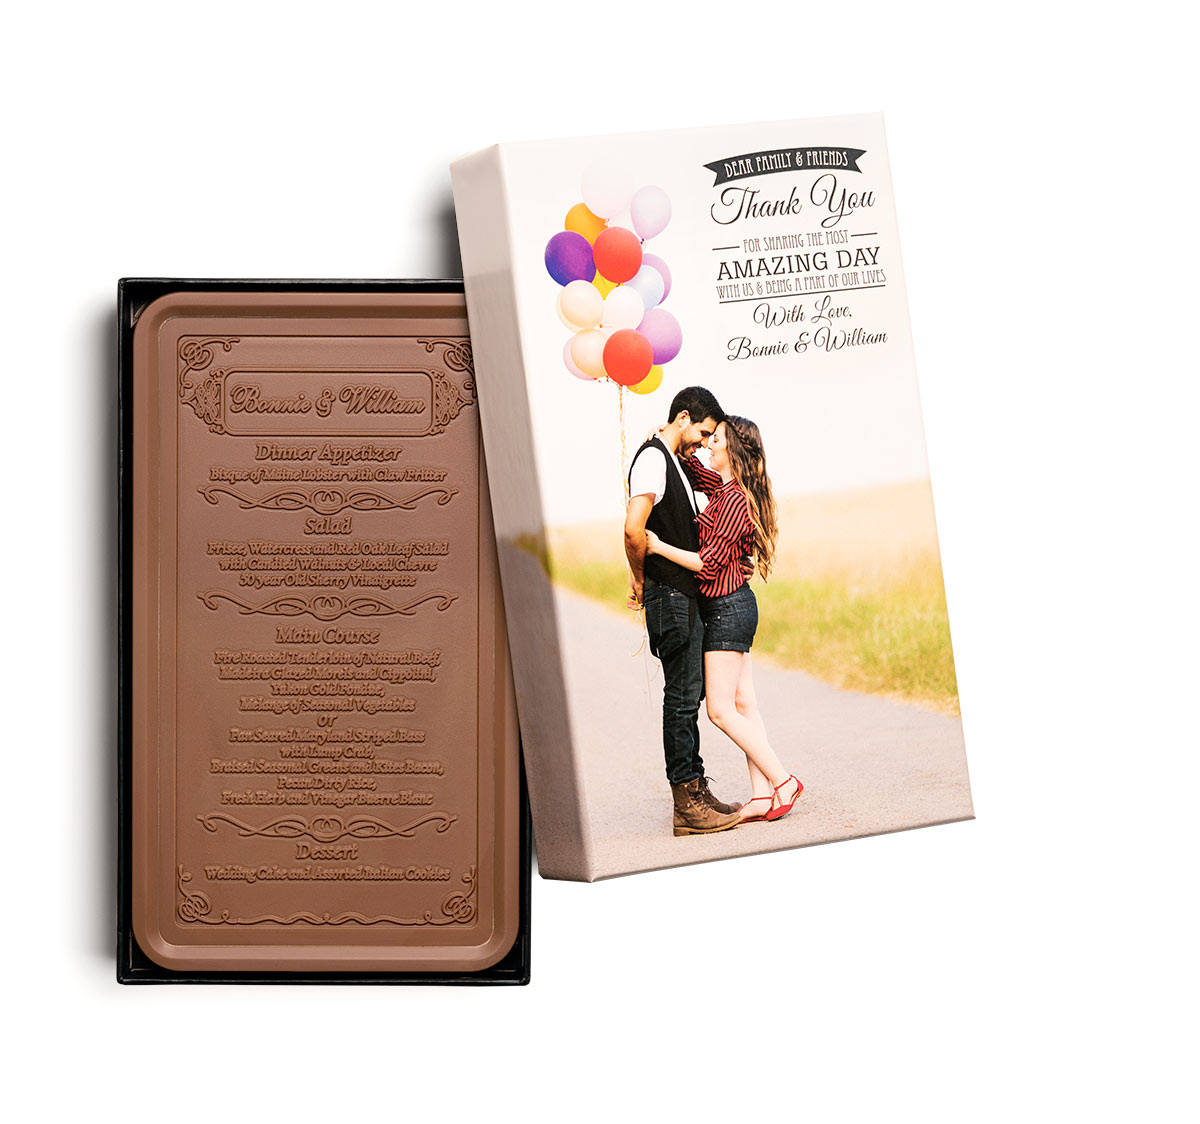 wedding-fully-custom-chocolate-1016-grand-bar-featured-menu-bonnie-william